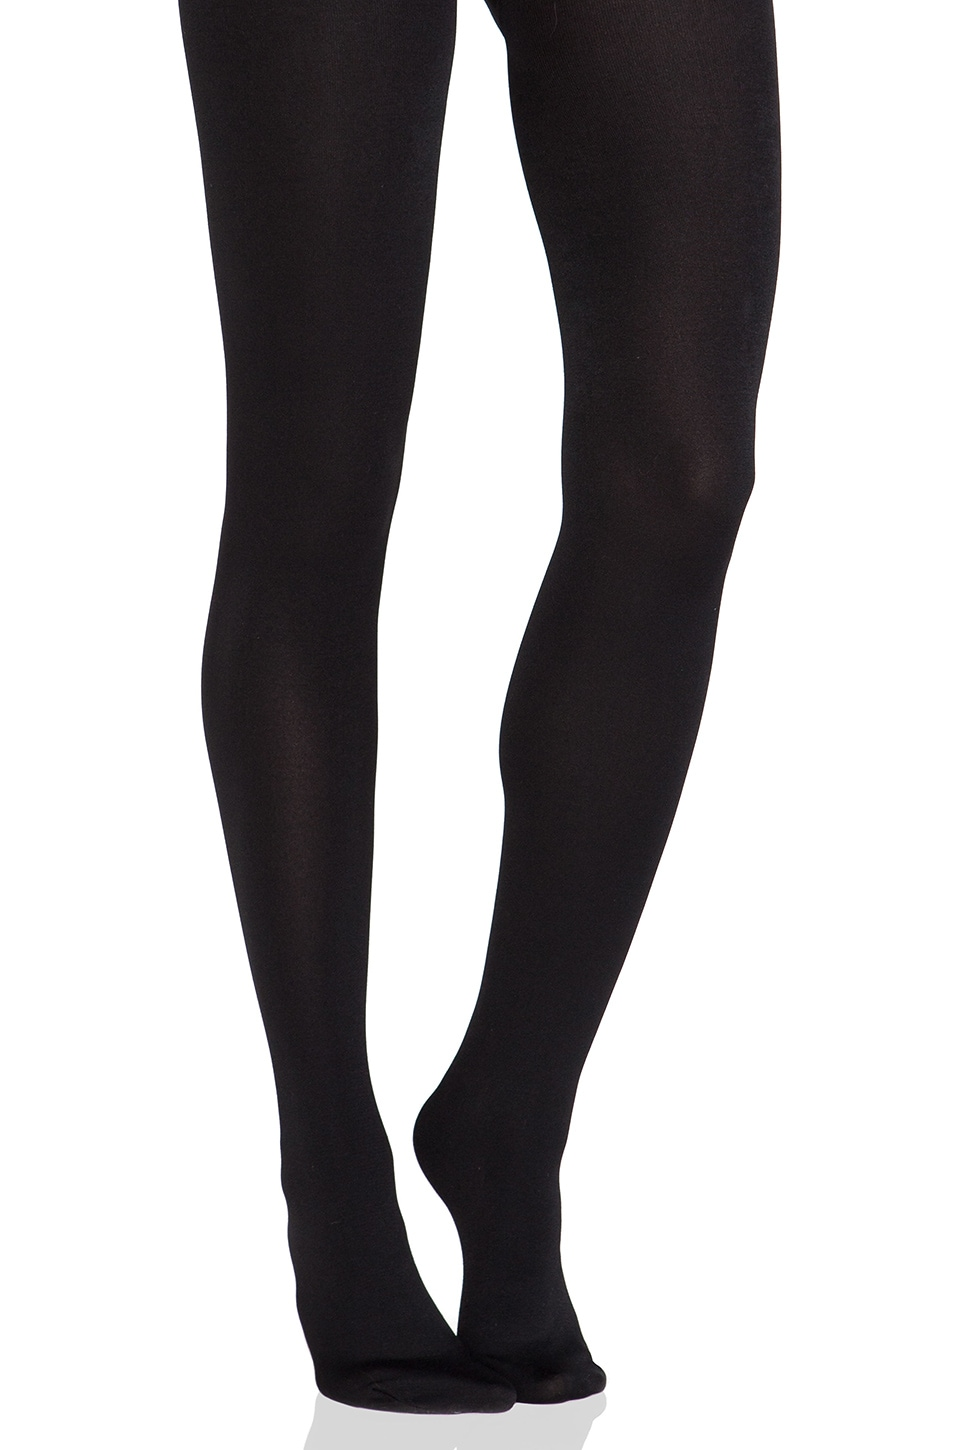 Plush COLLANTS FULL FOOT FLEECE LINED